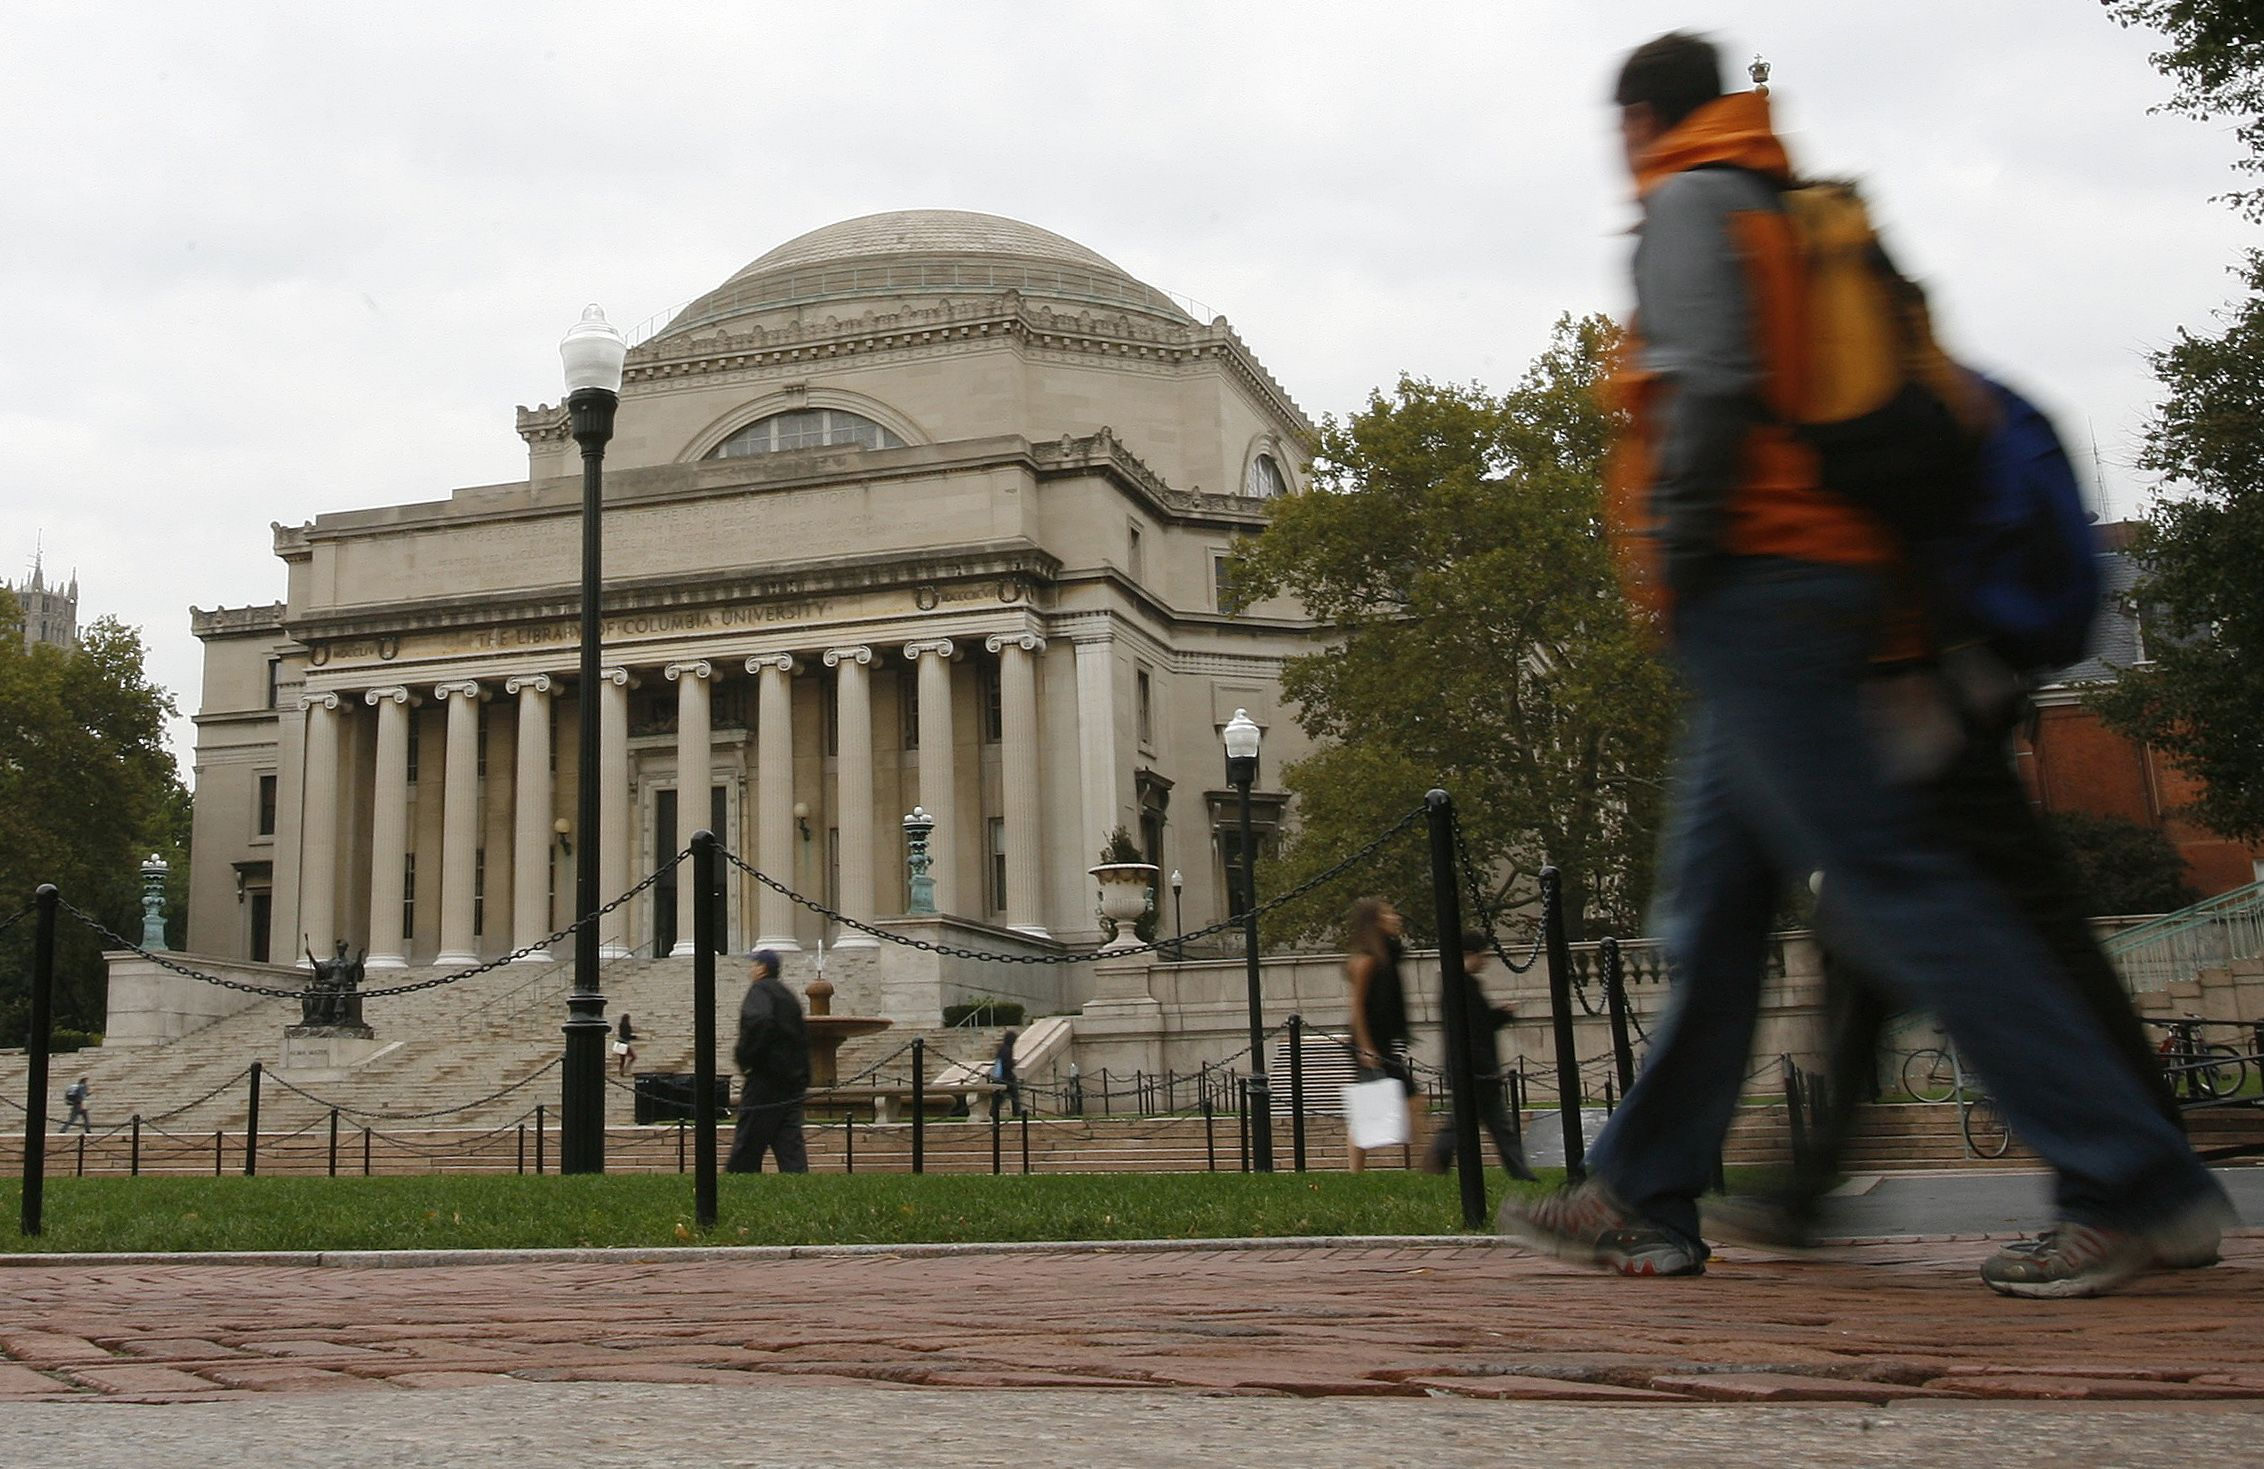 Students walk across the campus of Columbia University in New York in this picture taken October 2, 2009.